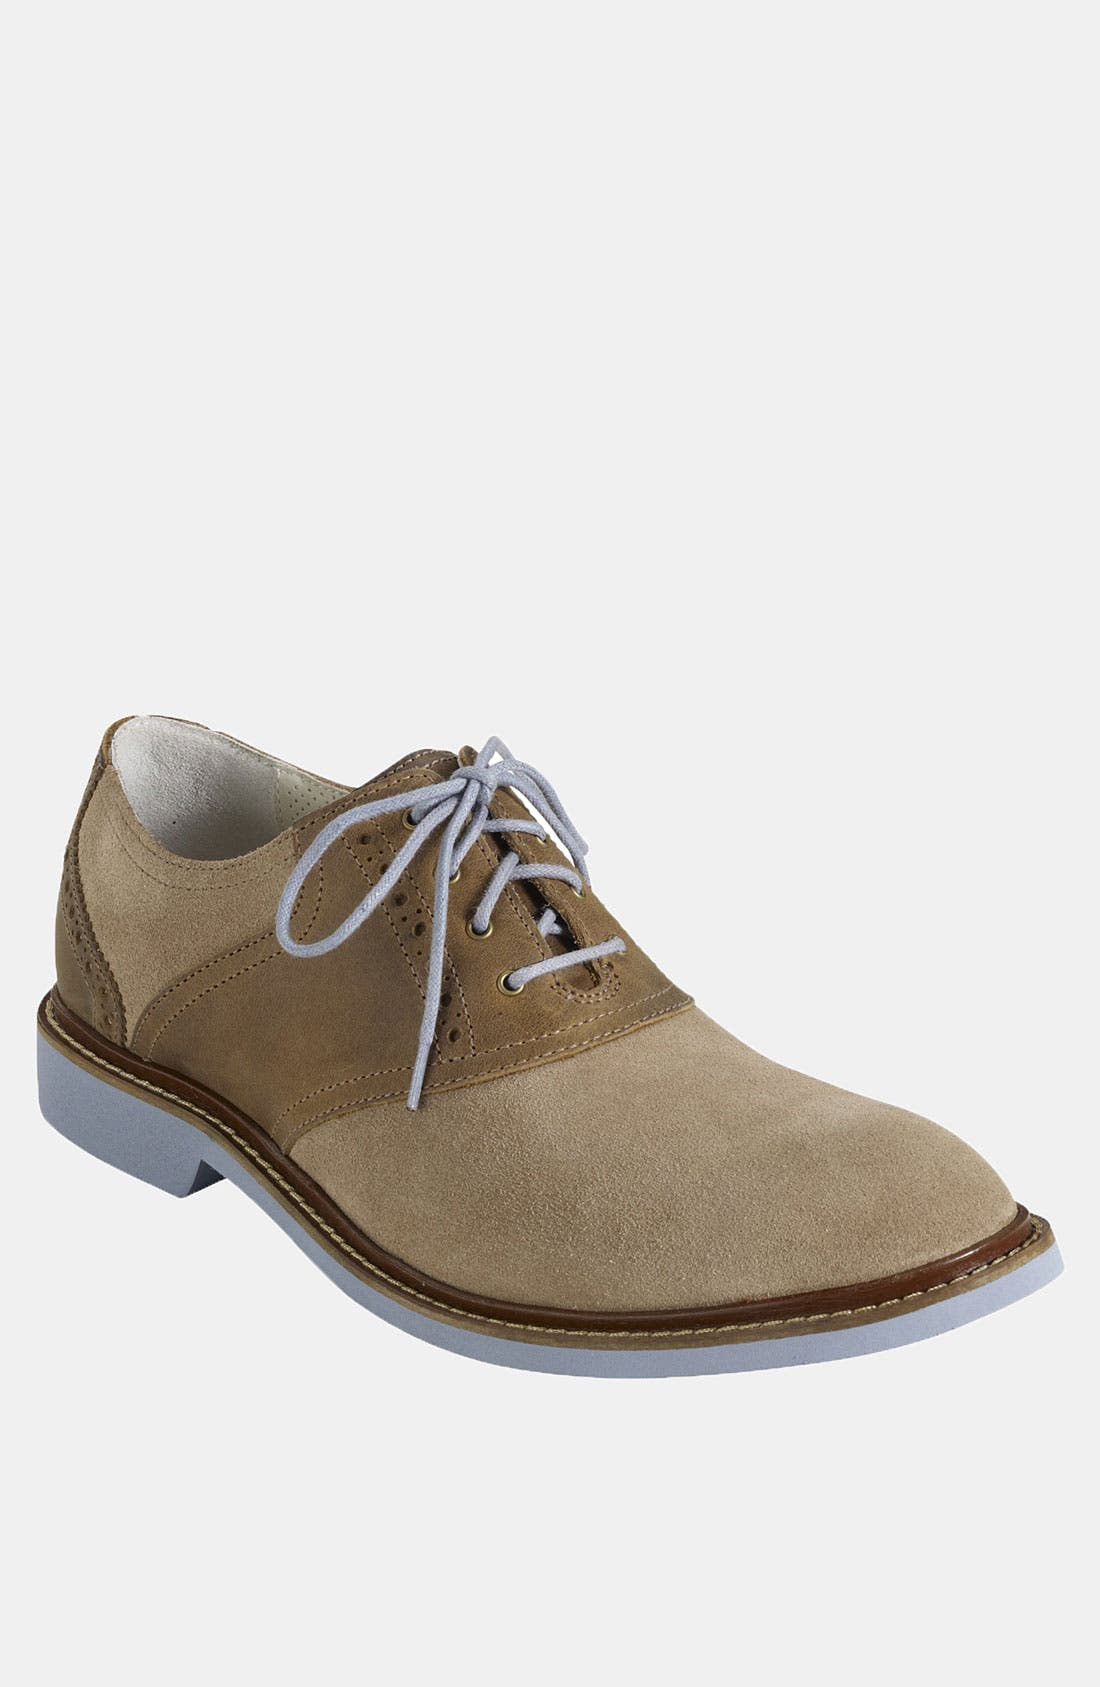 Alternate Image 1 Selected - Cole Haan 'Air Franklin' Oxford